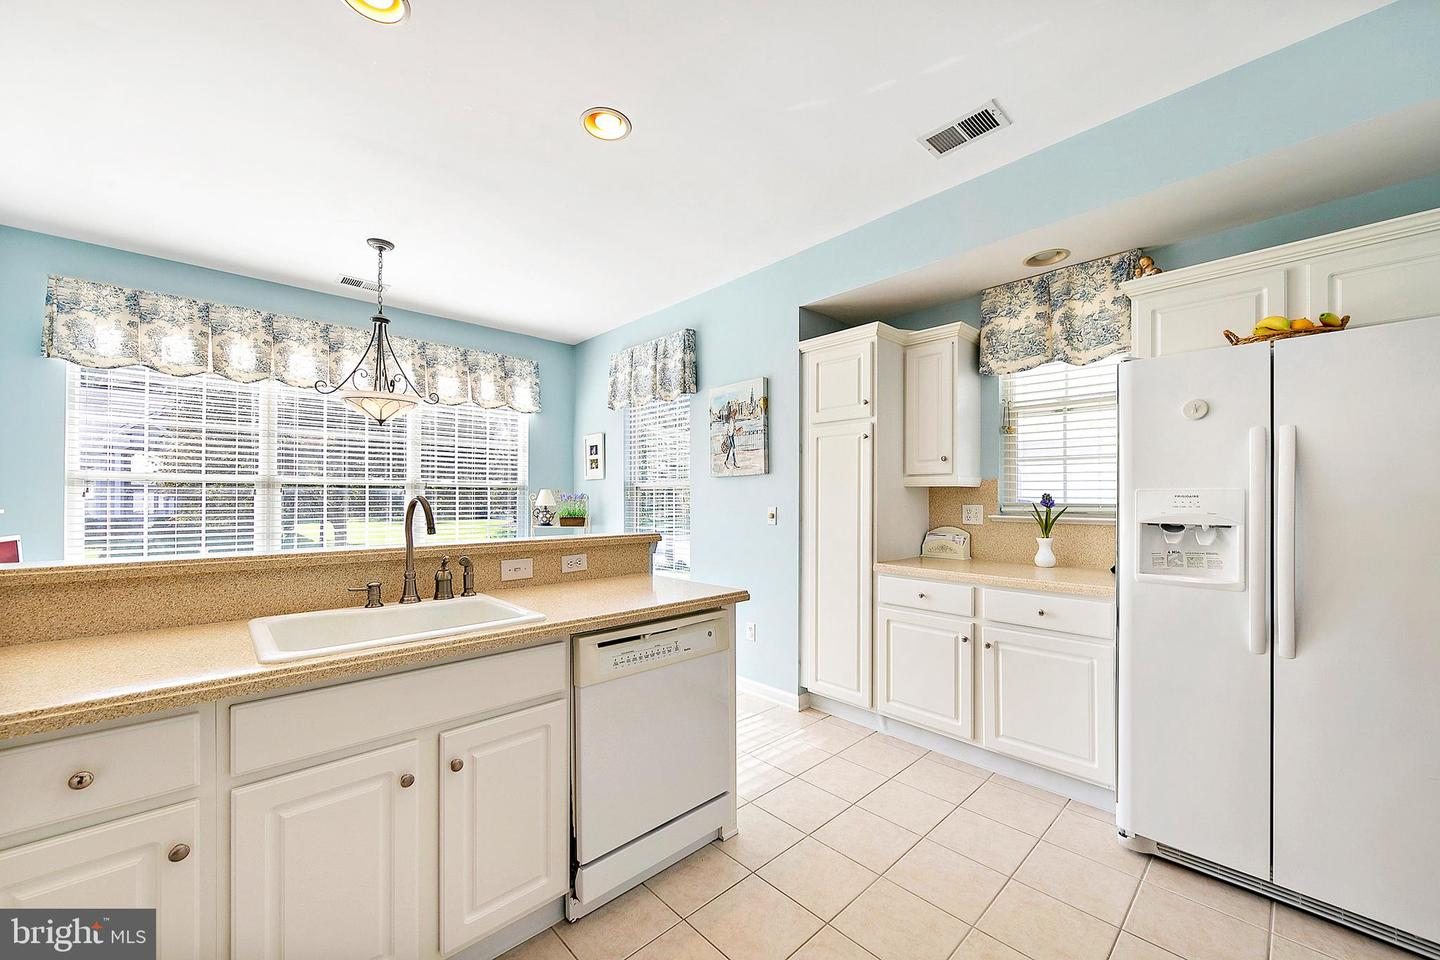 339 Golf View Drive , LITTLE EGG HARBOR TWP, New Jersey image 32